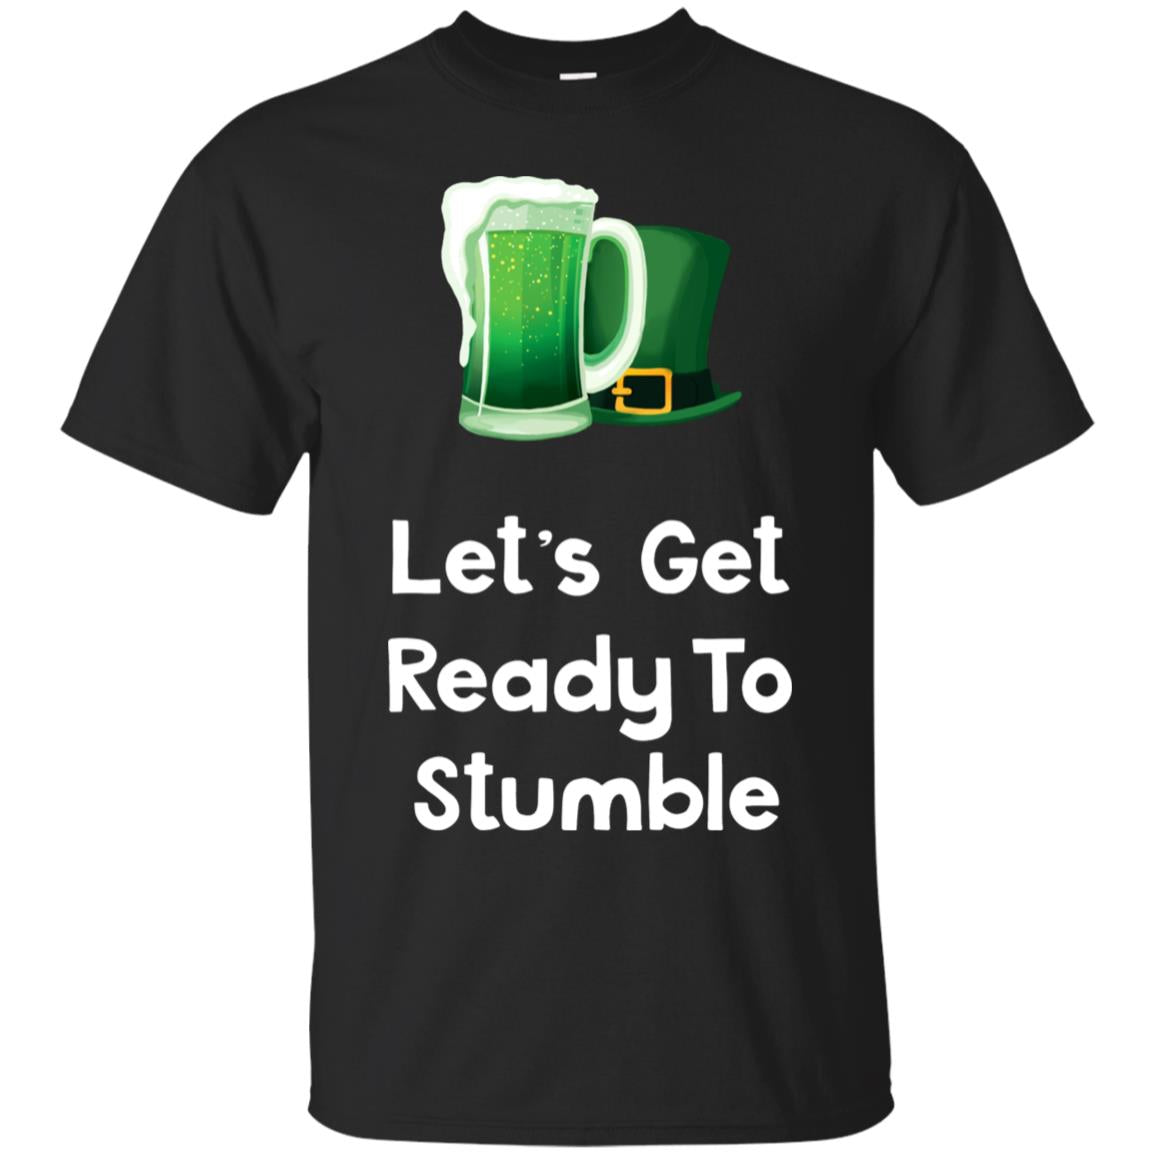 Let's Get Ready To Stumble St. Patrick's Day T-shirt 99promocode